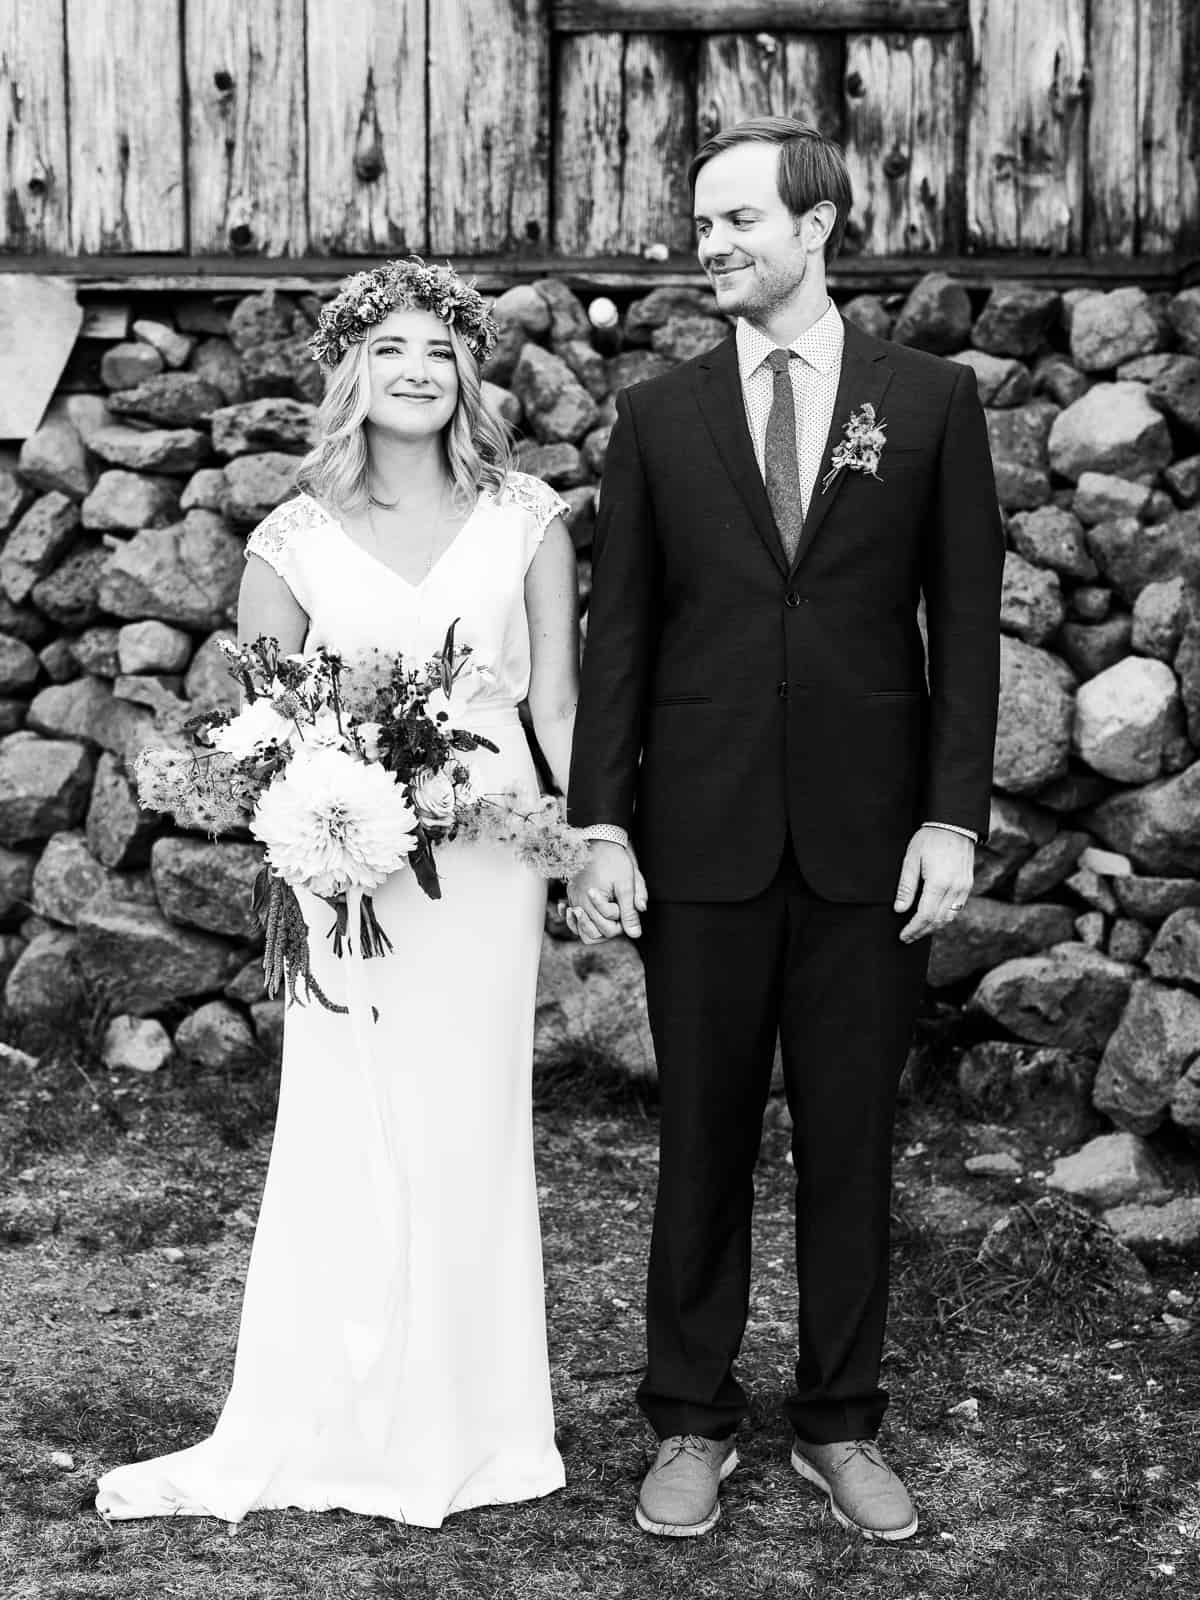 classic black and white photo of bride and groom